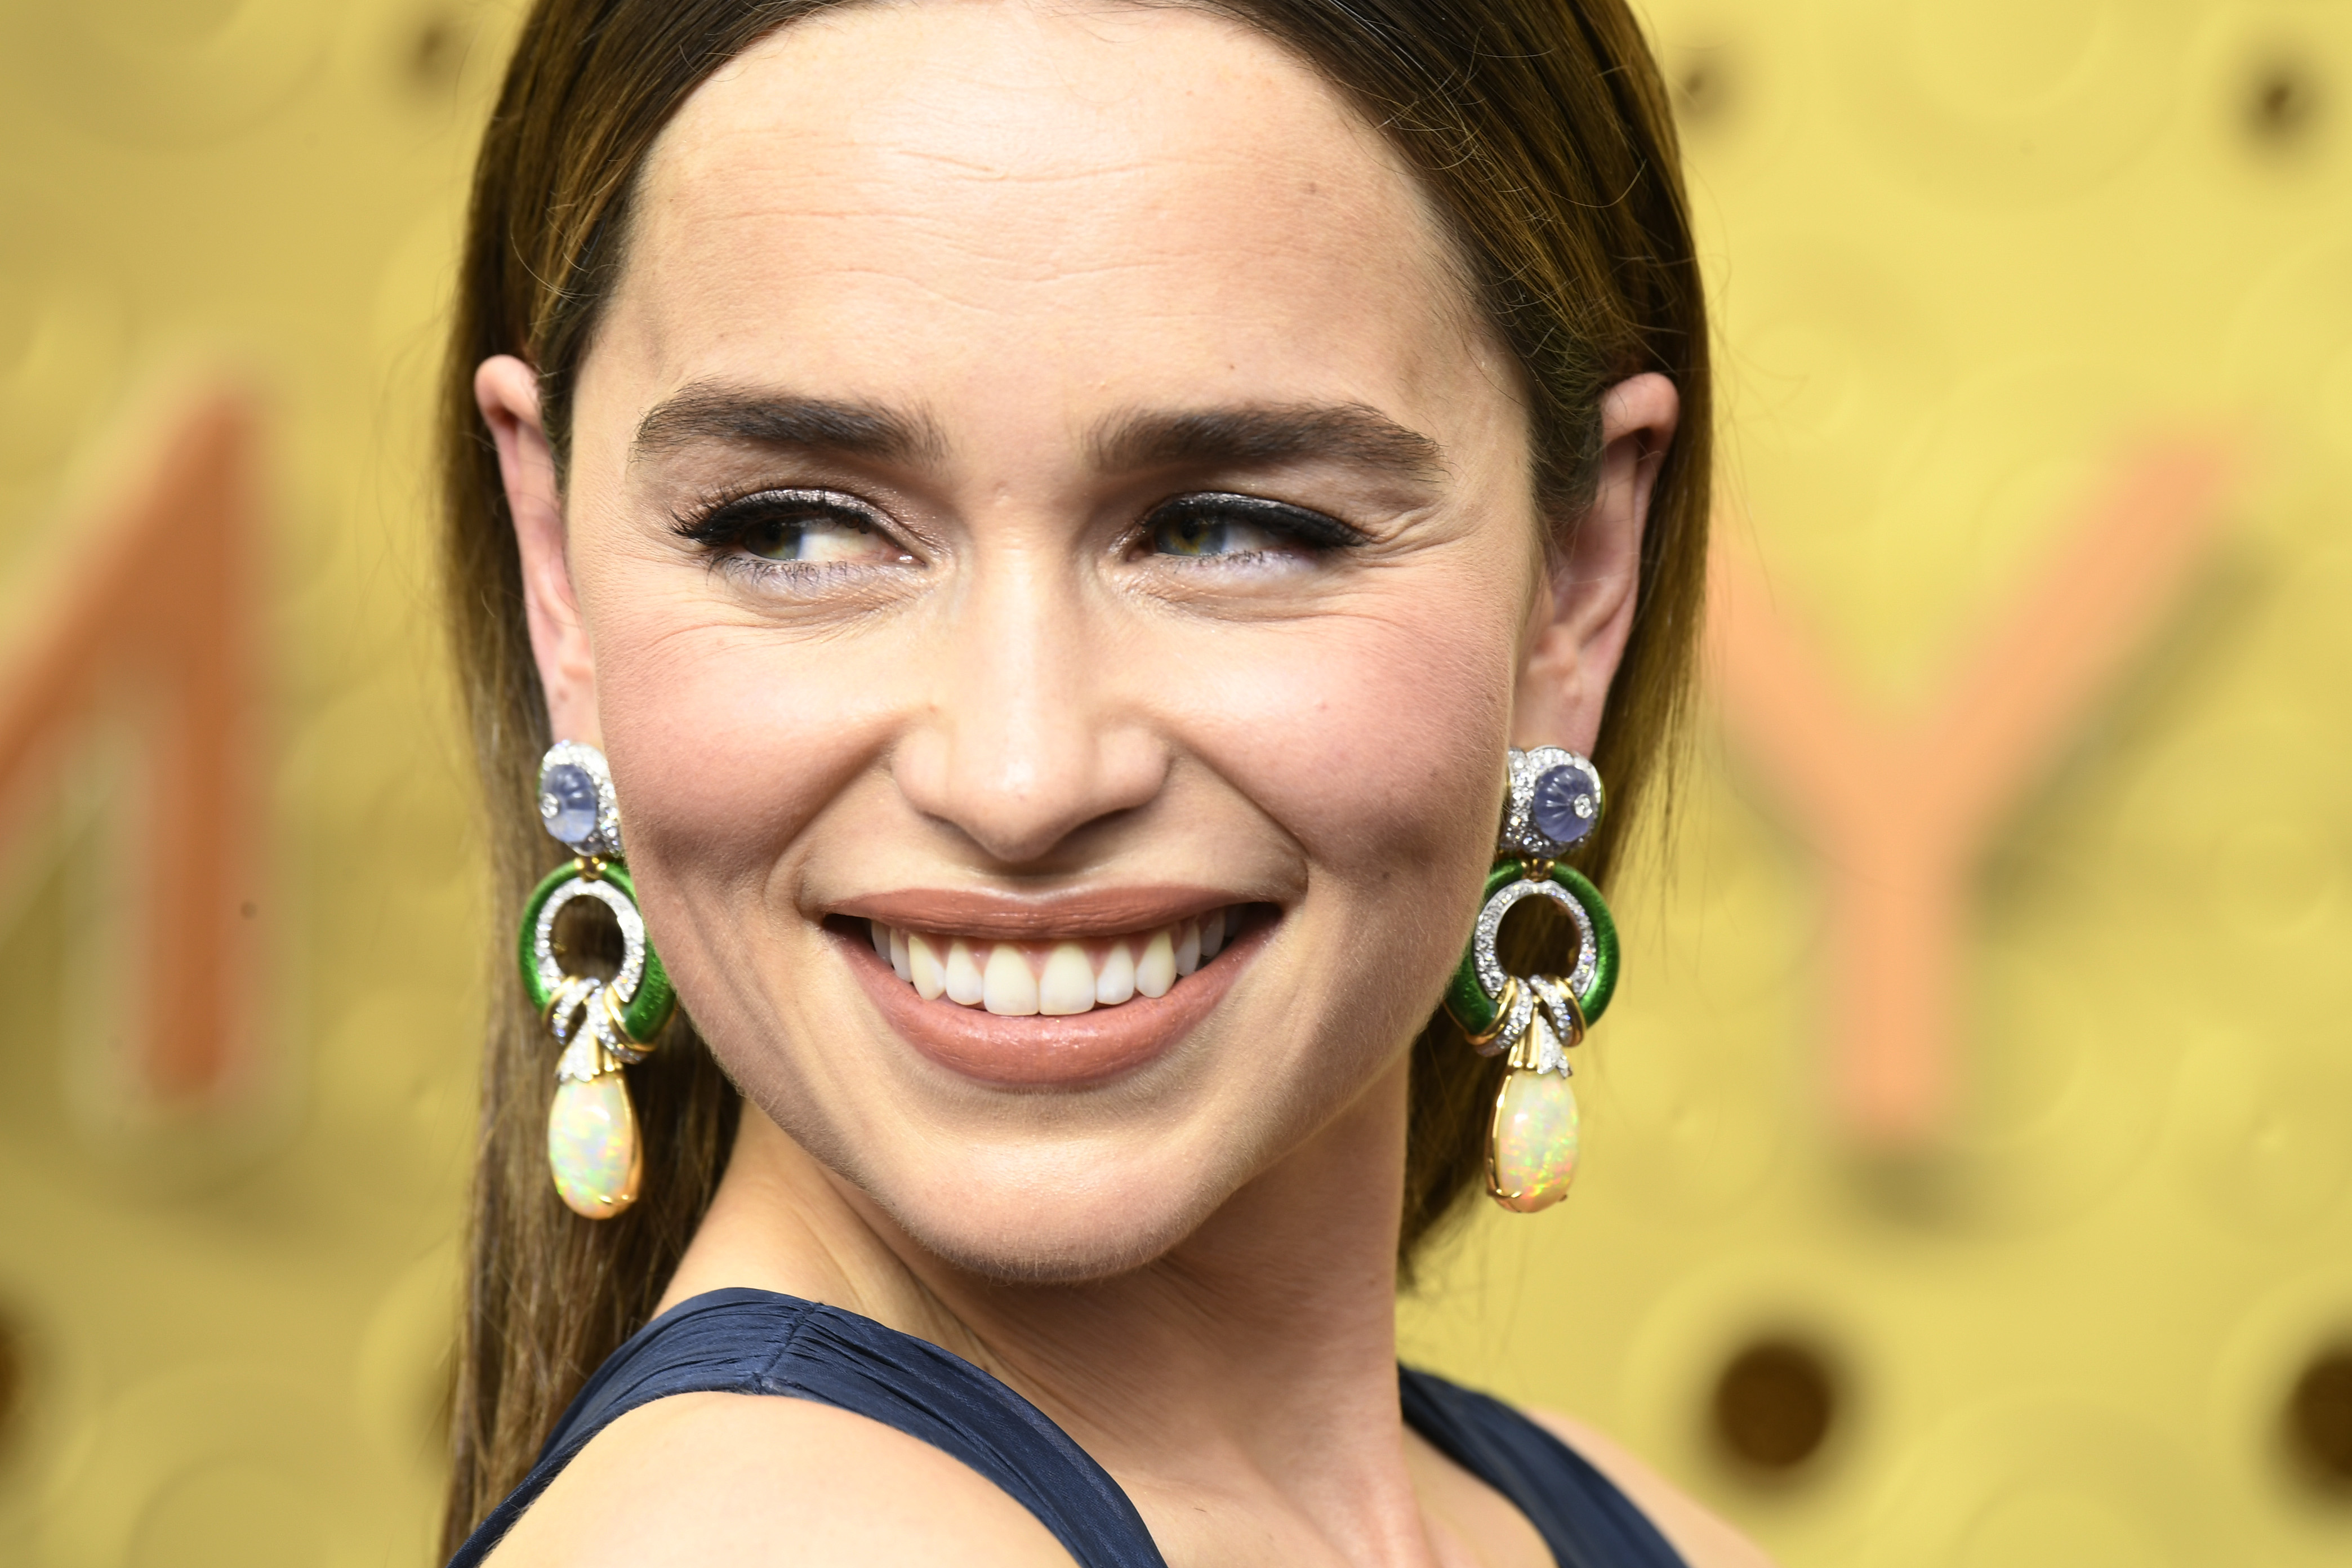 Emilia Clarke channels JLo at Emmy Awards, stuns in revealing gown